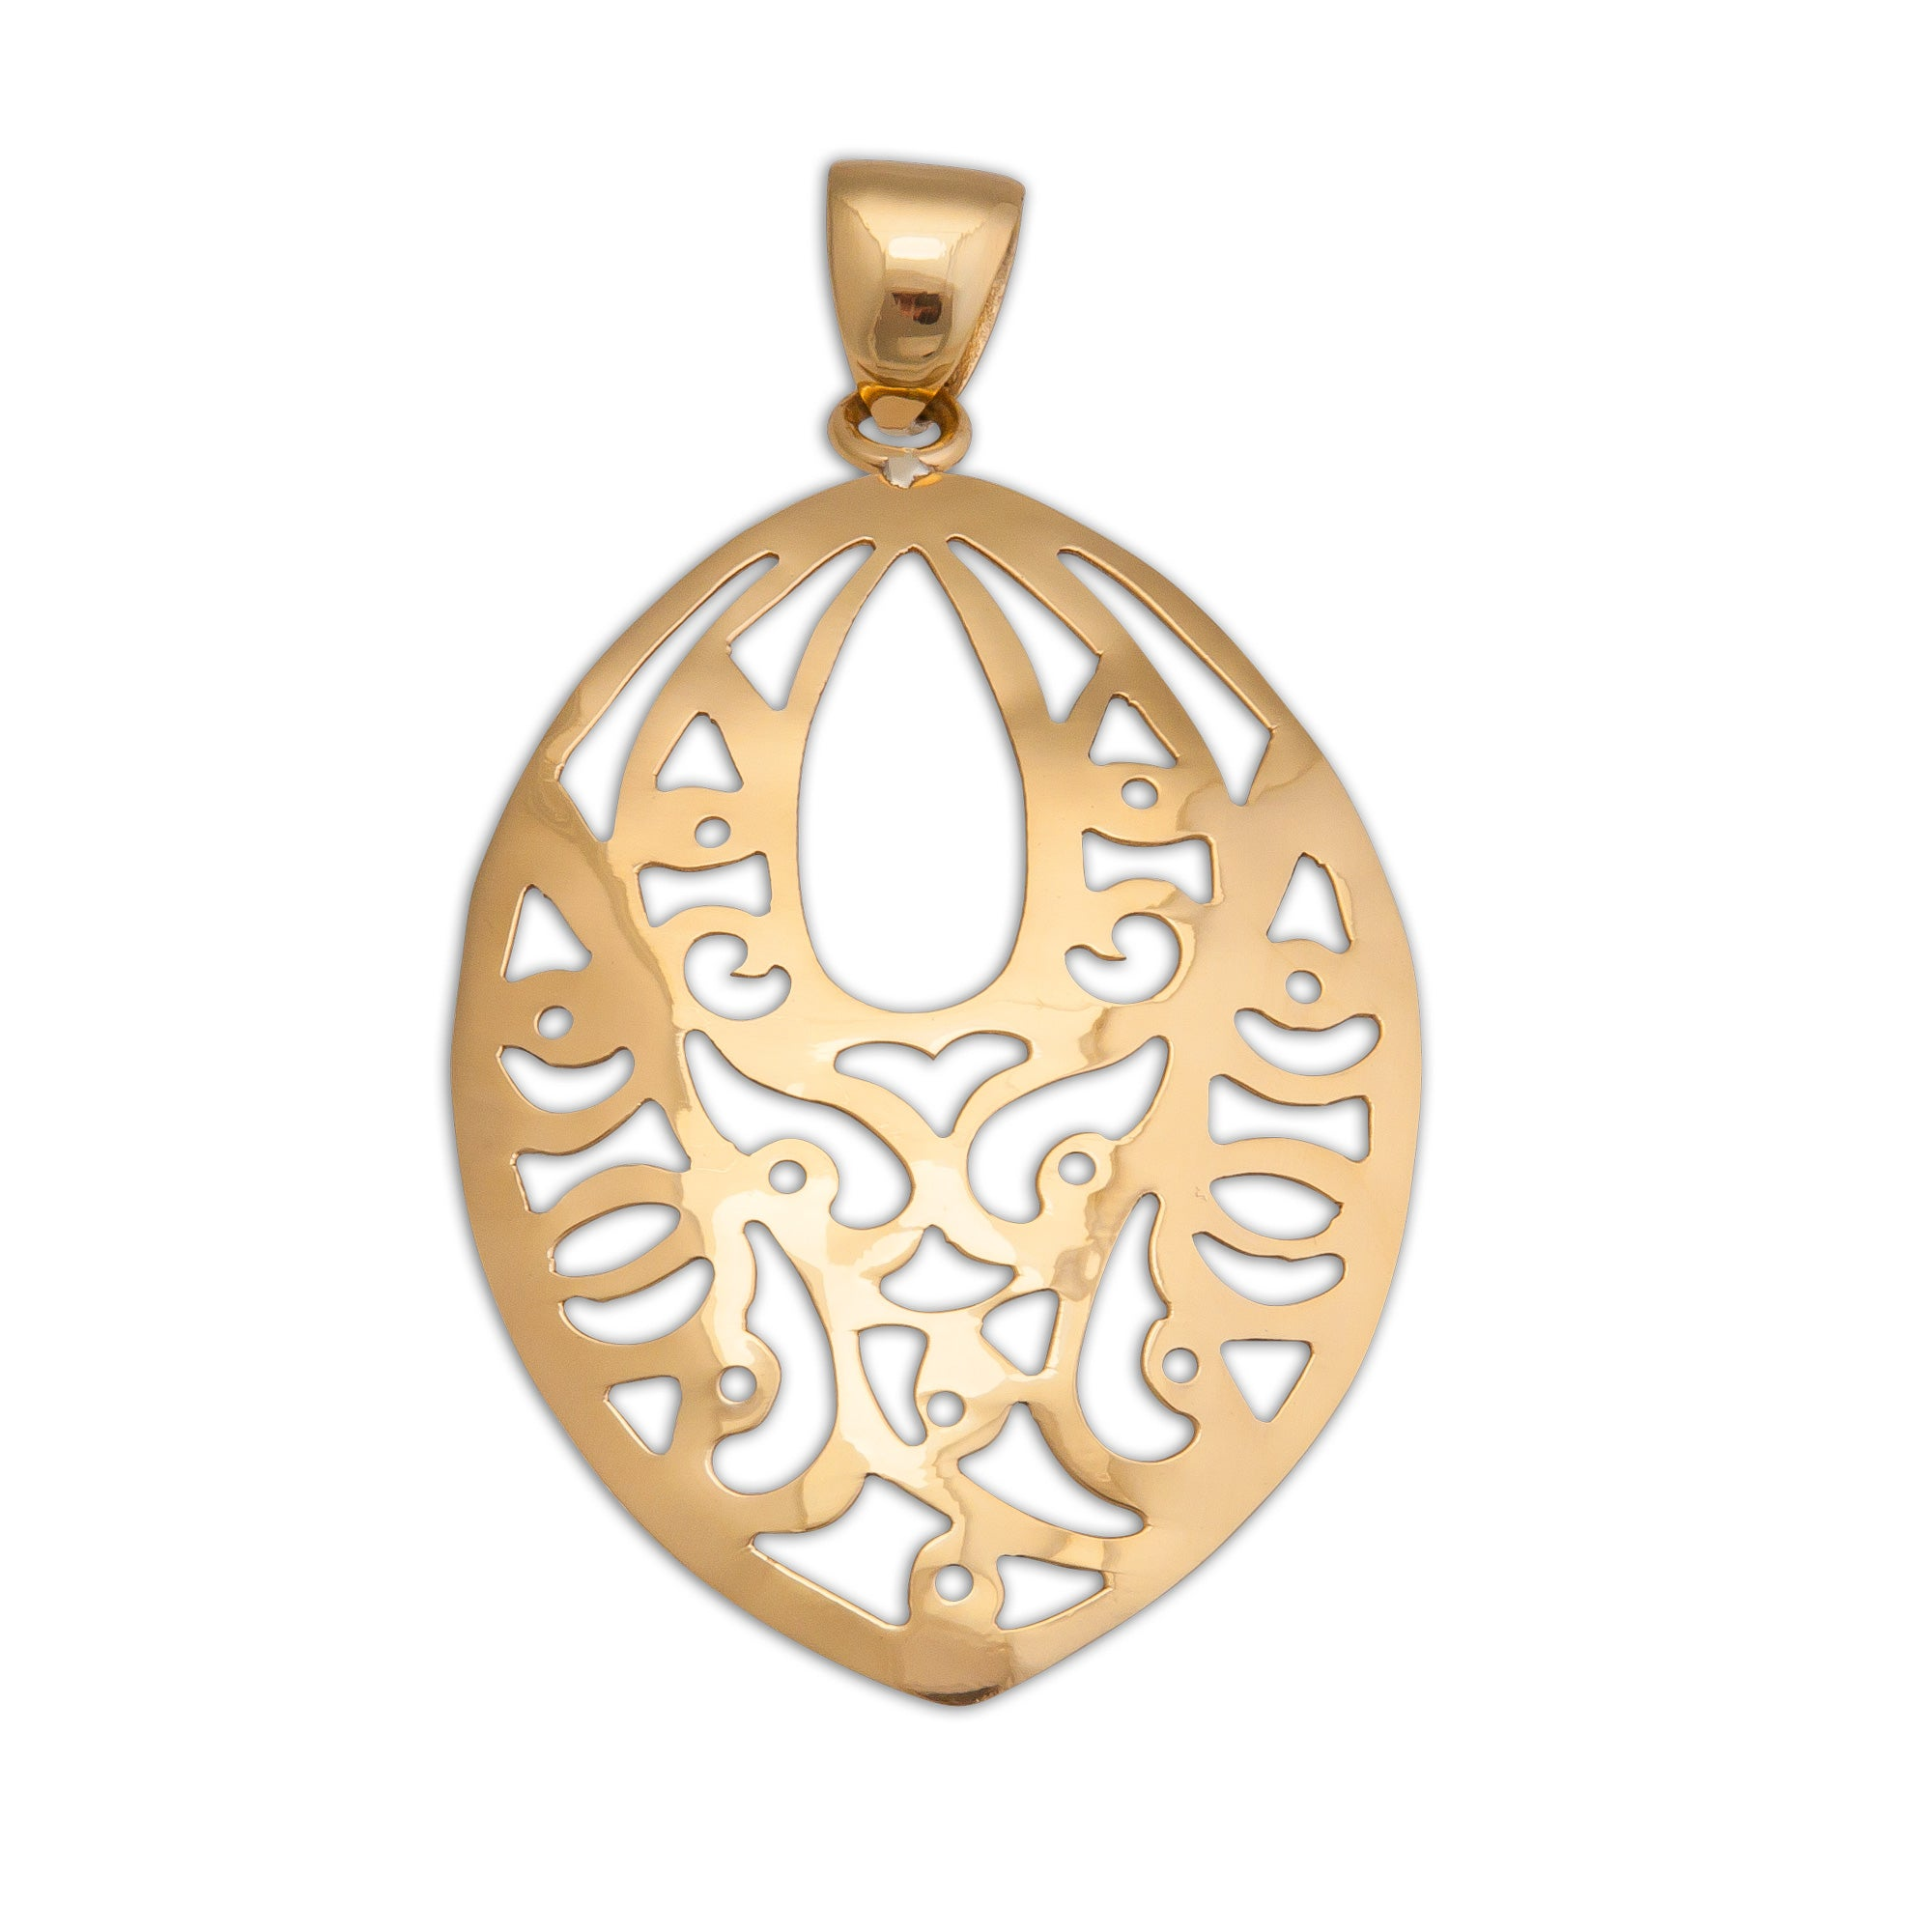 Alchemia-Patterned-Pendant-1-Charles Albert Inc